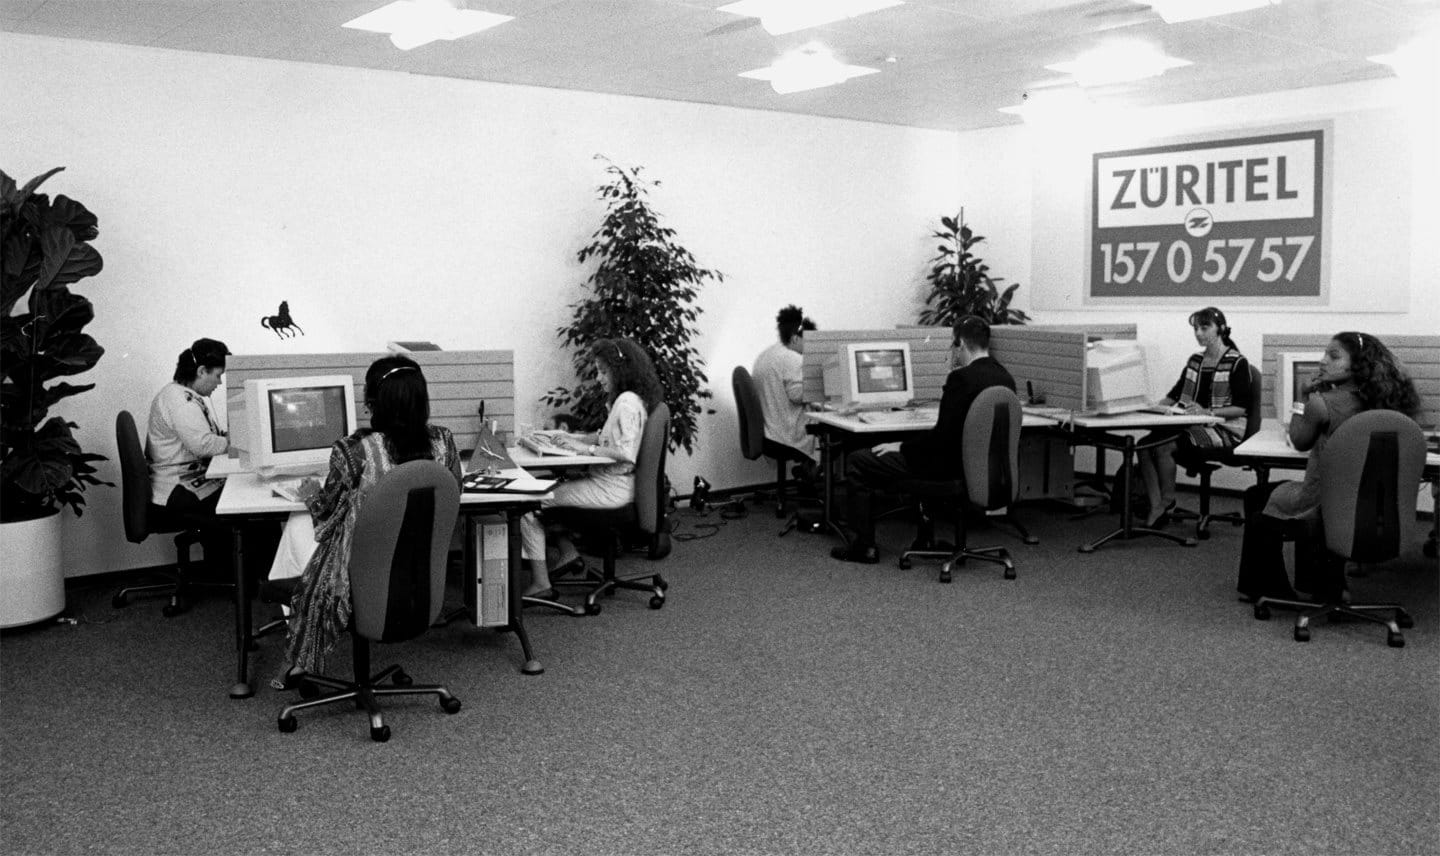 1994: Zurich starts direct marketing